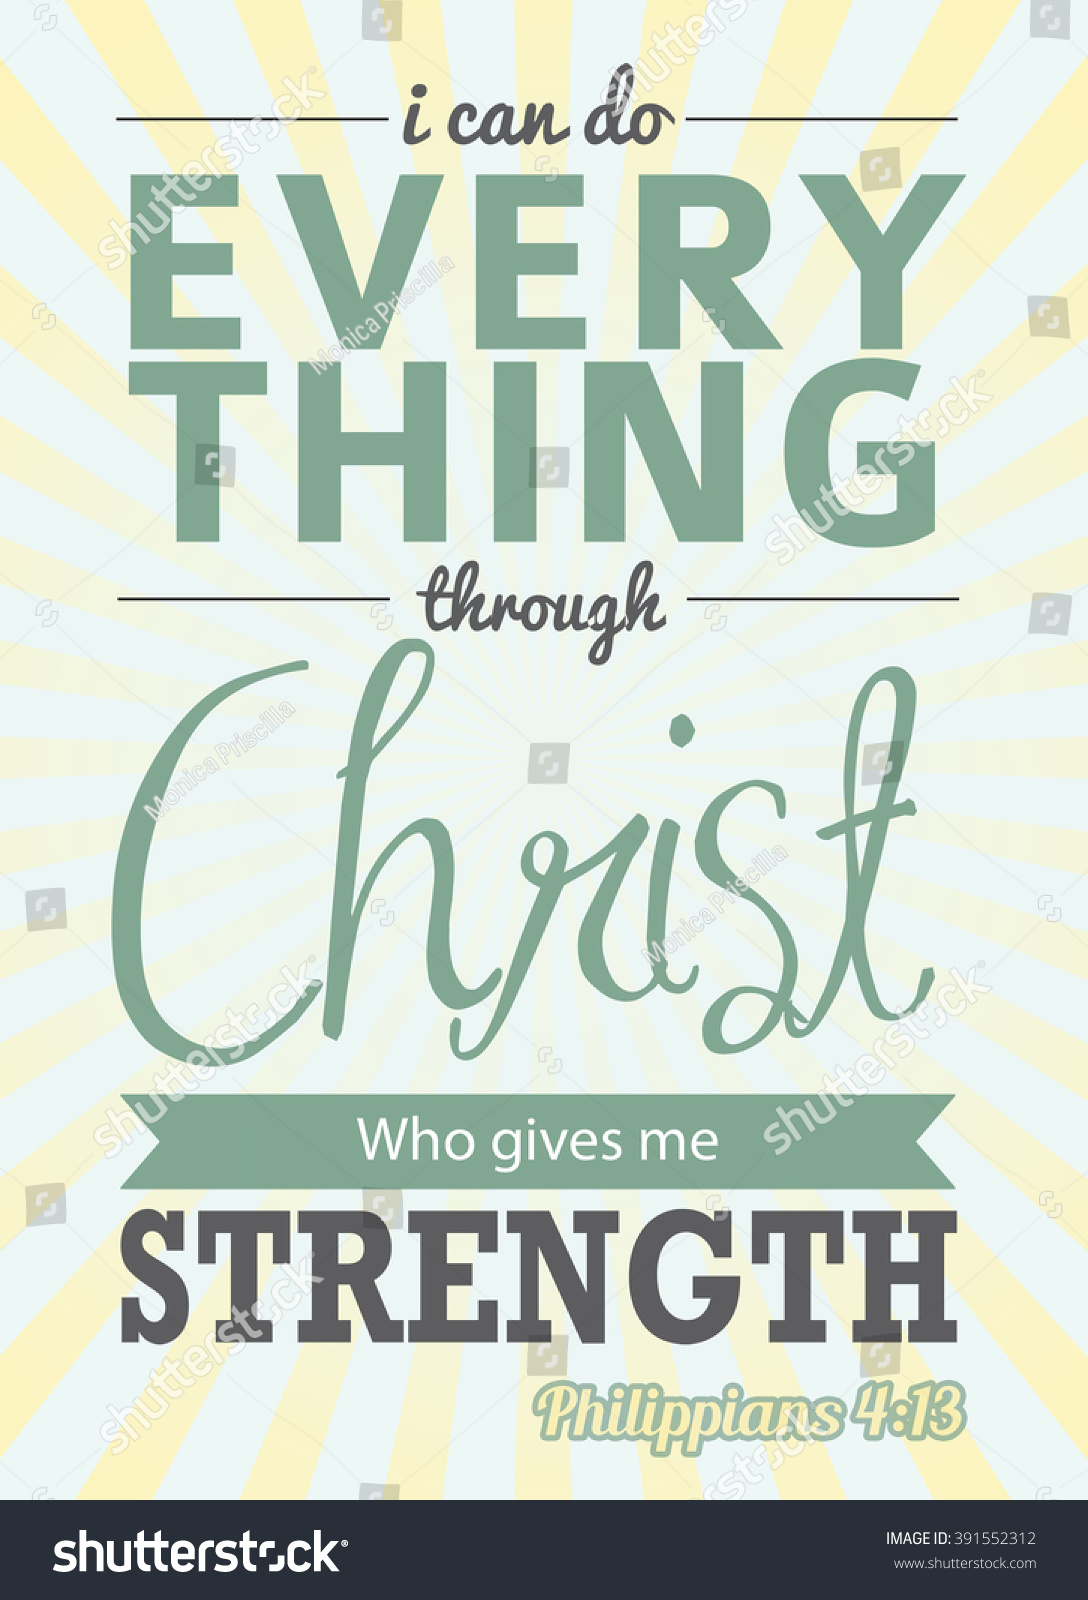 Philippians Background 106 images in Collection Page 1 1088x1600